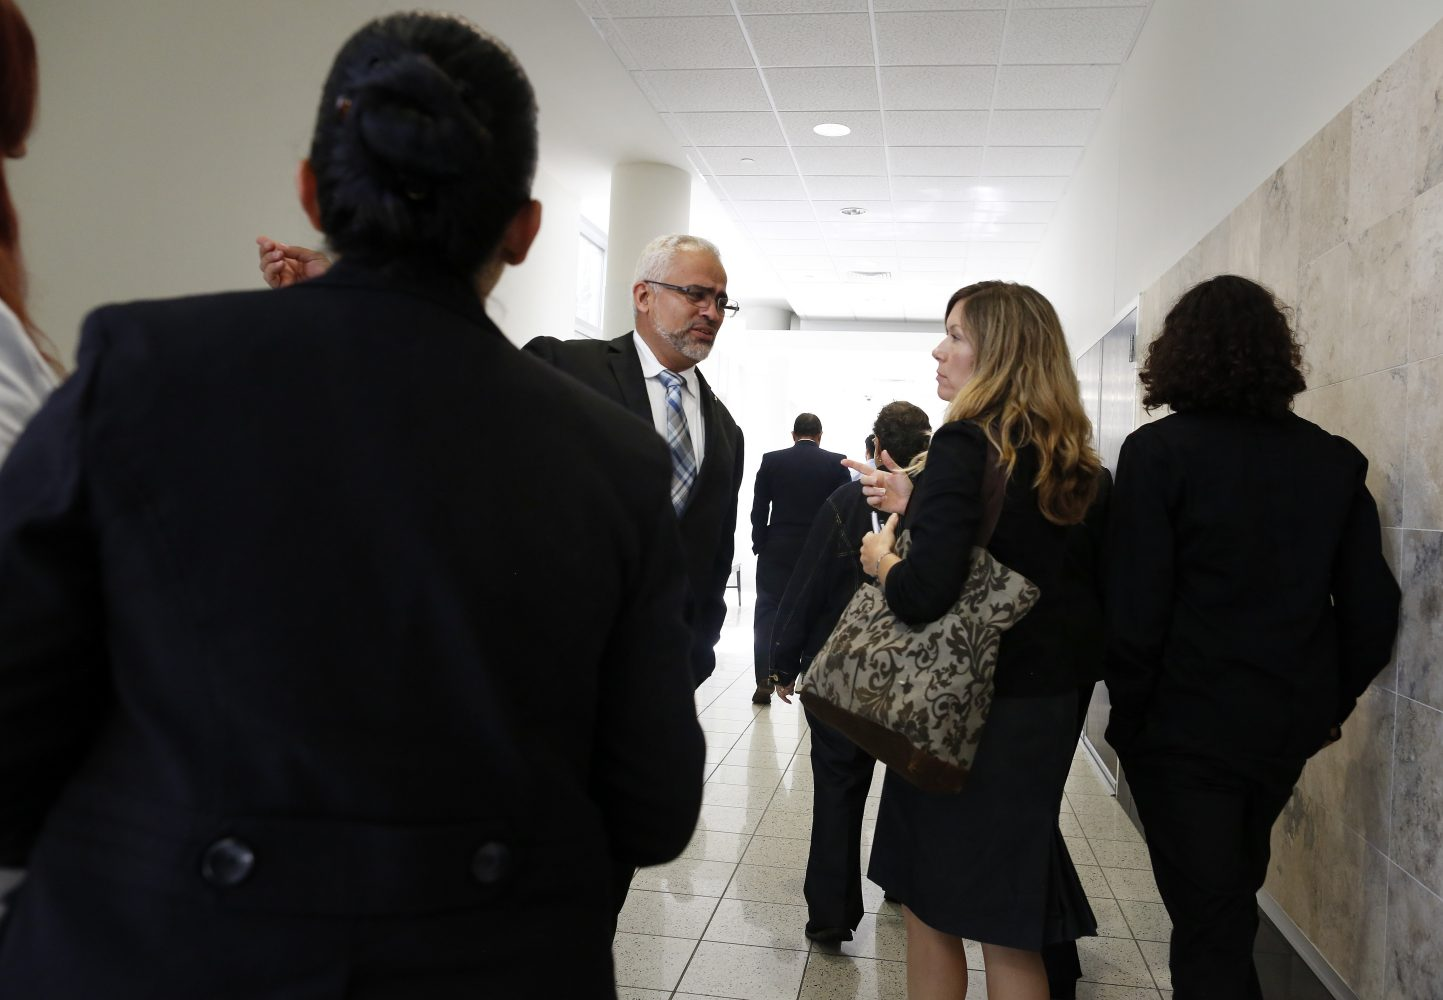 Carlos Aguilar, the father of Christian Aguilar, leaves the courtroom for a lunch recess following the prosecution's  opening statements in the case against Pedro Bravo in courtroom 1B of the Alachua County Criminal Justice Center Tuesday, August 5, 2014.  (Doug Finger/The Gainesville Sun/Pool)